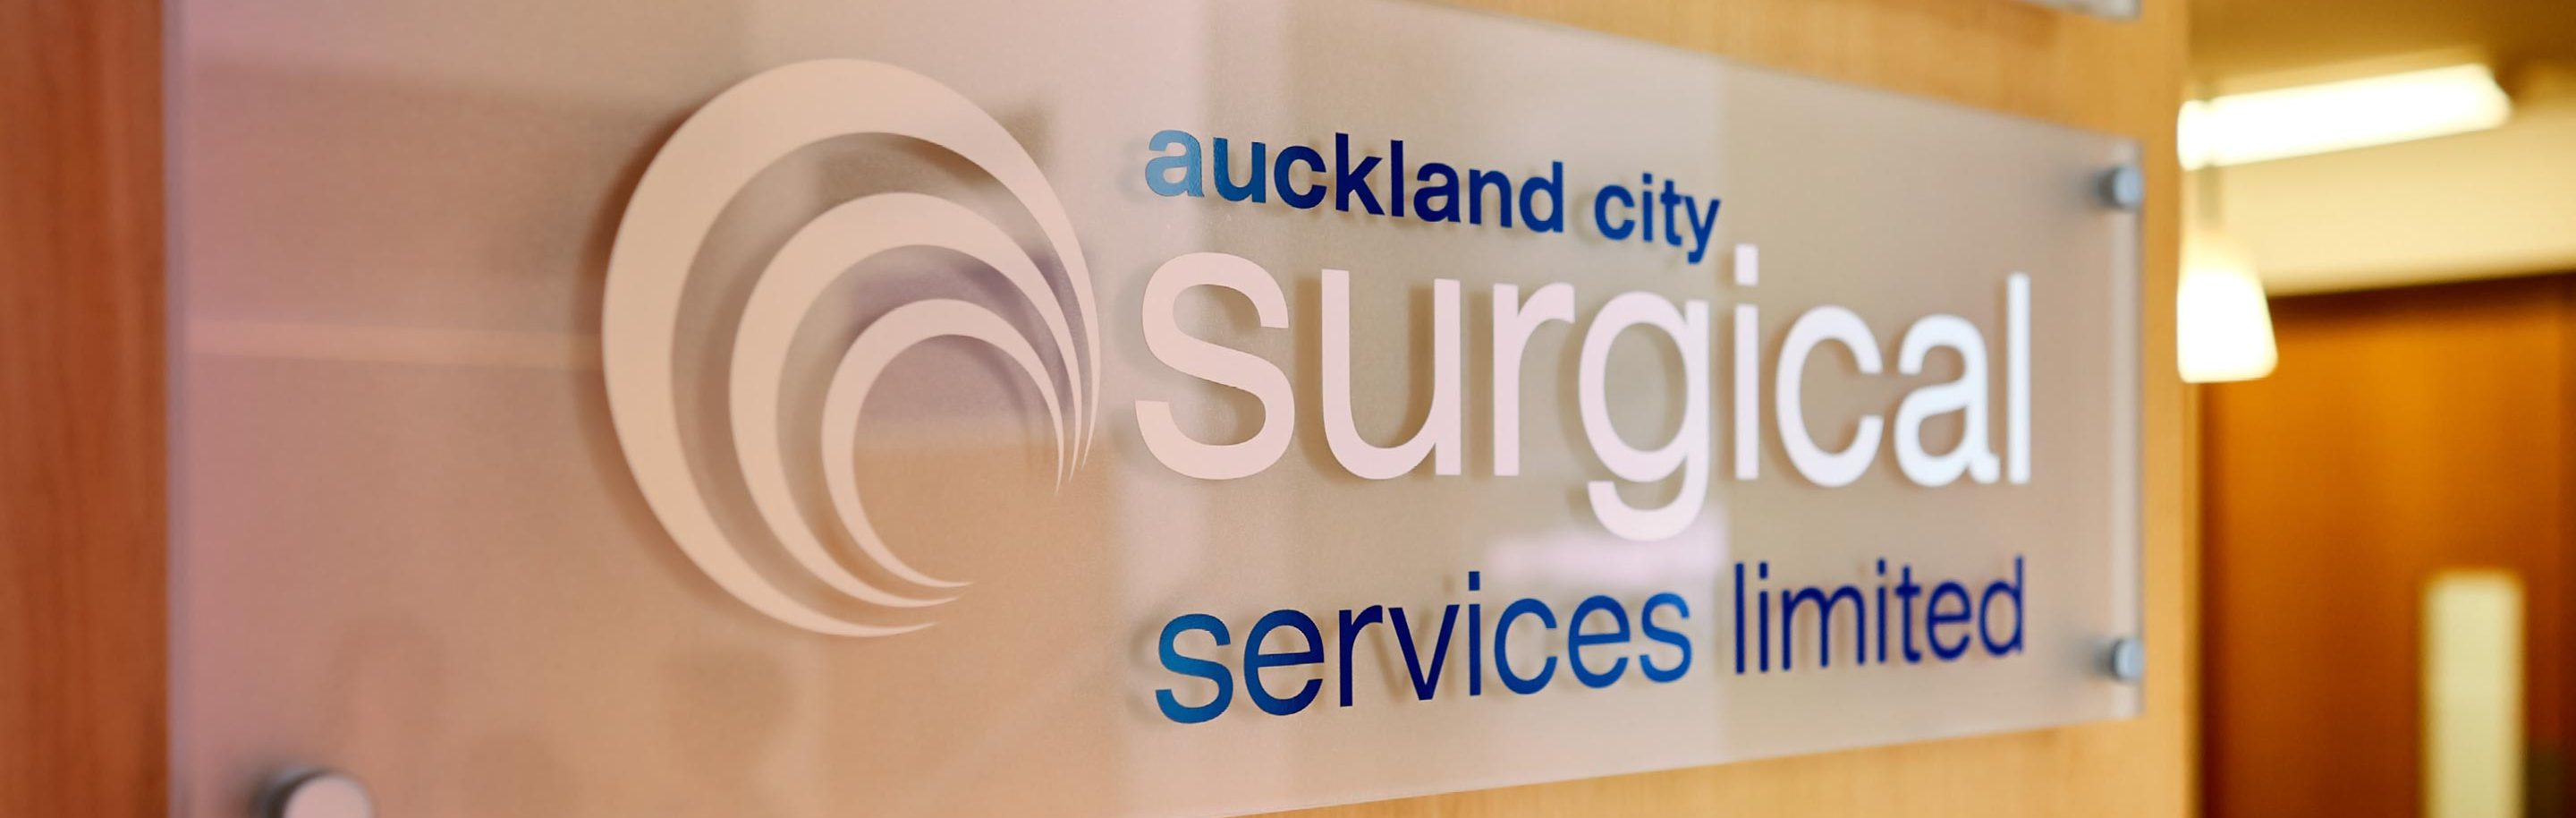 Auckland City Surgical Services Ltd.